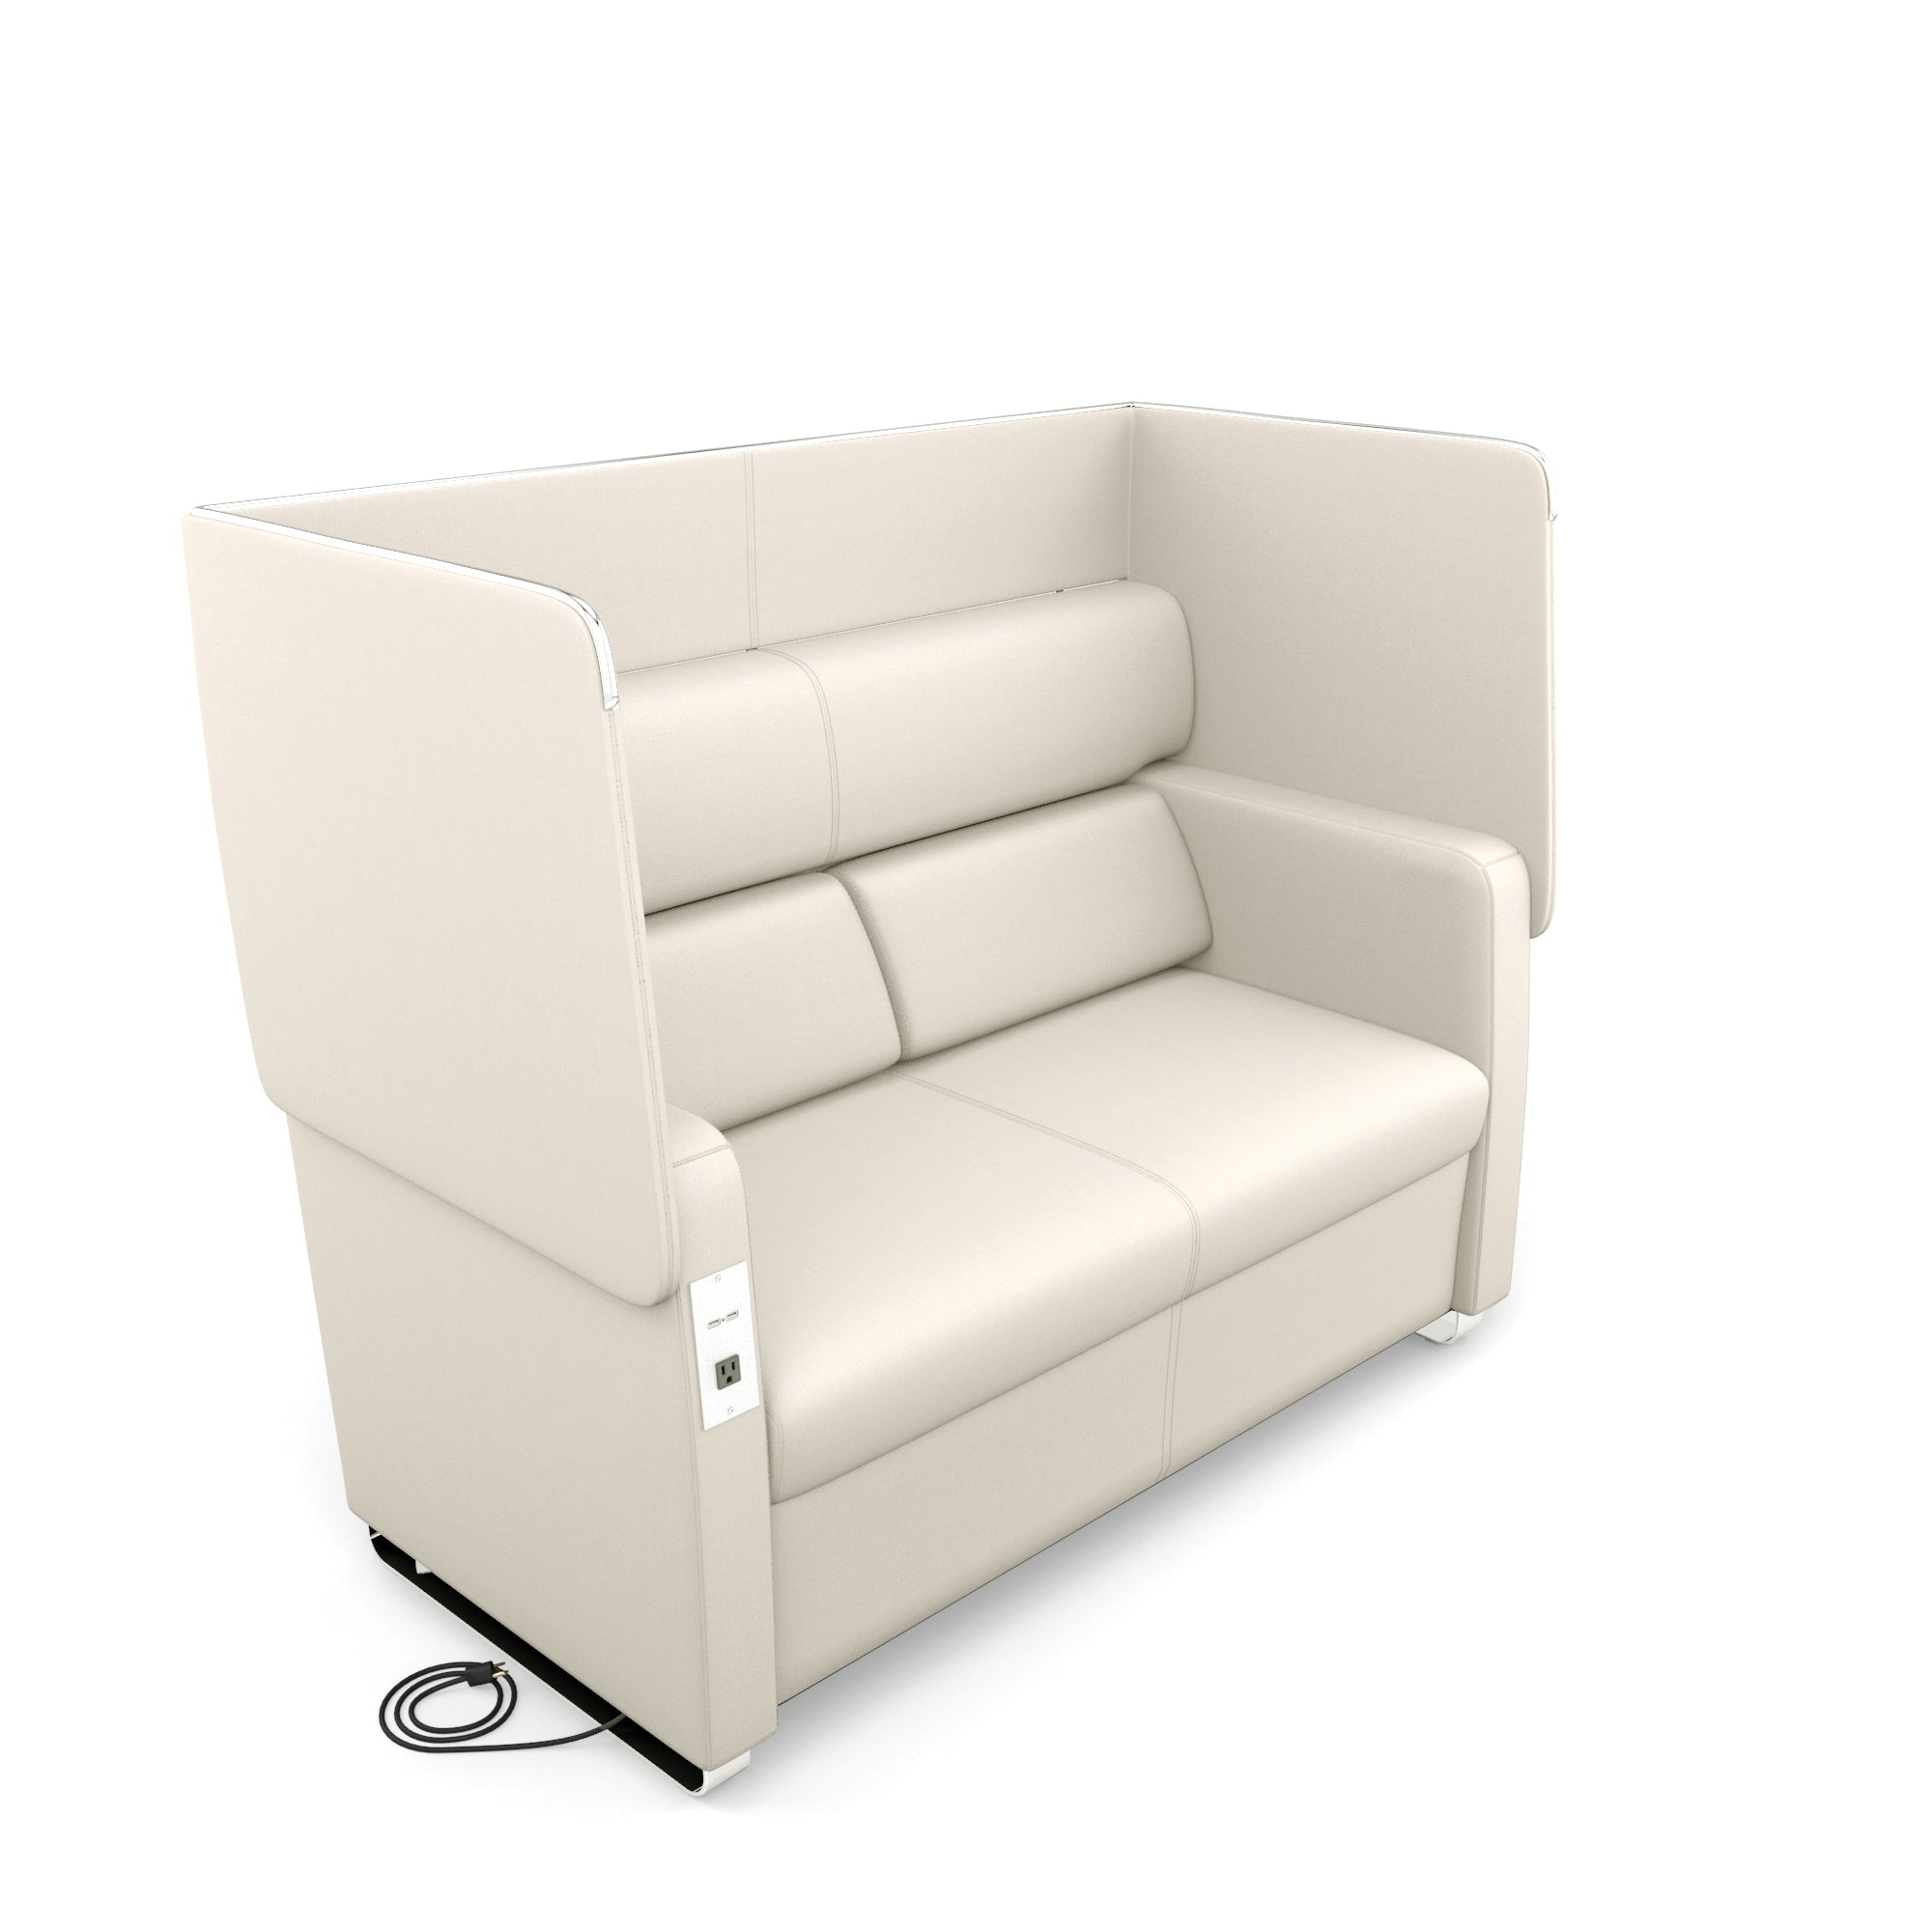 Admirable 2202 Lin Morph Series Vinyl Soft Seating White 1 Ac Outlet 2 Usb Ports 500 Lb Capacity Privacy Panel Lounge Dual Sofa Chair Alphanode Cool Chair Designs And Ideas Alphanodeonline